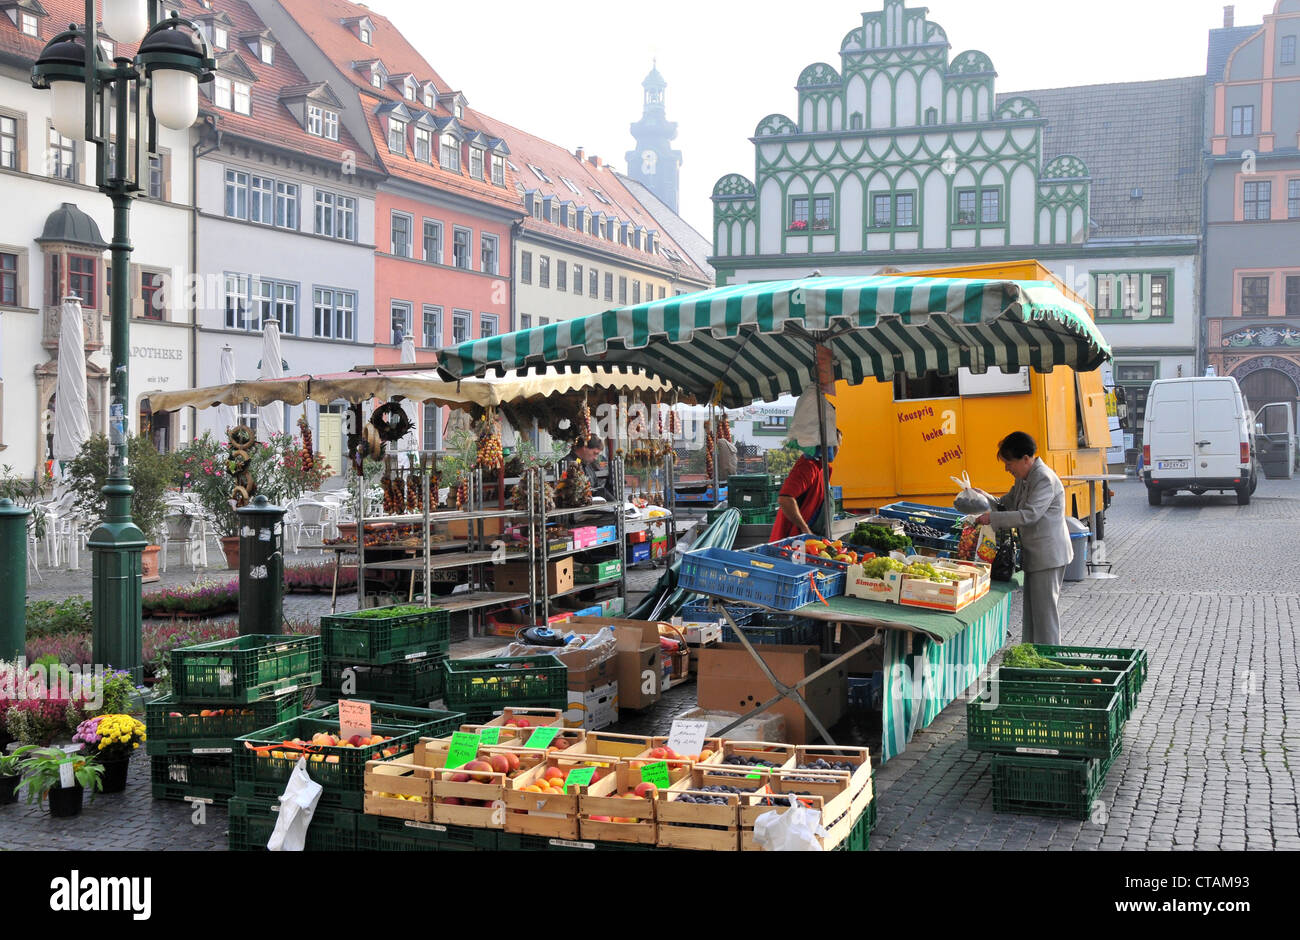 markt auf dem markt platz weimar th ringen deutschland stockfoto bild 49407935 alamy. Black Bedroom Furniture Sets. Home Design Ideas